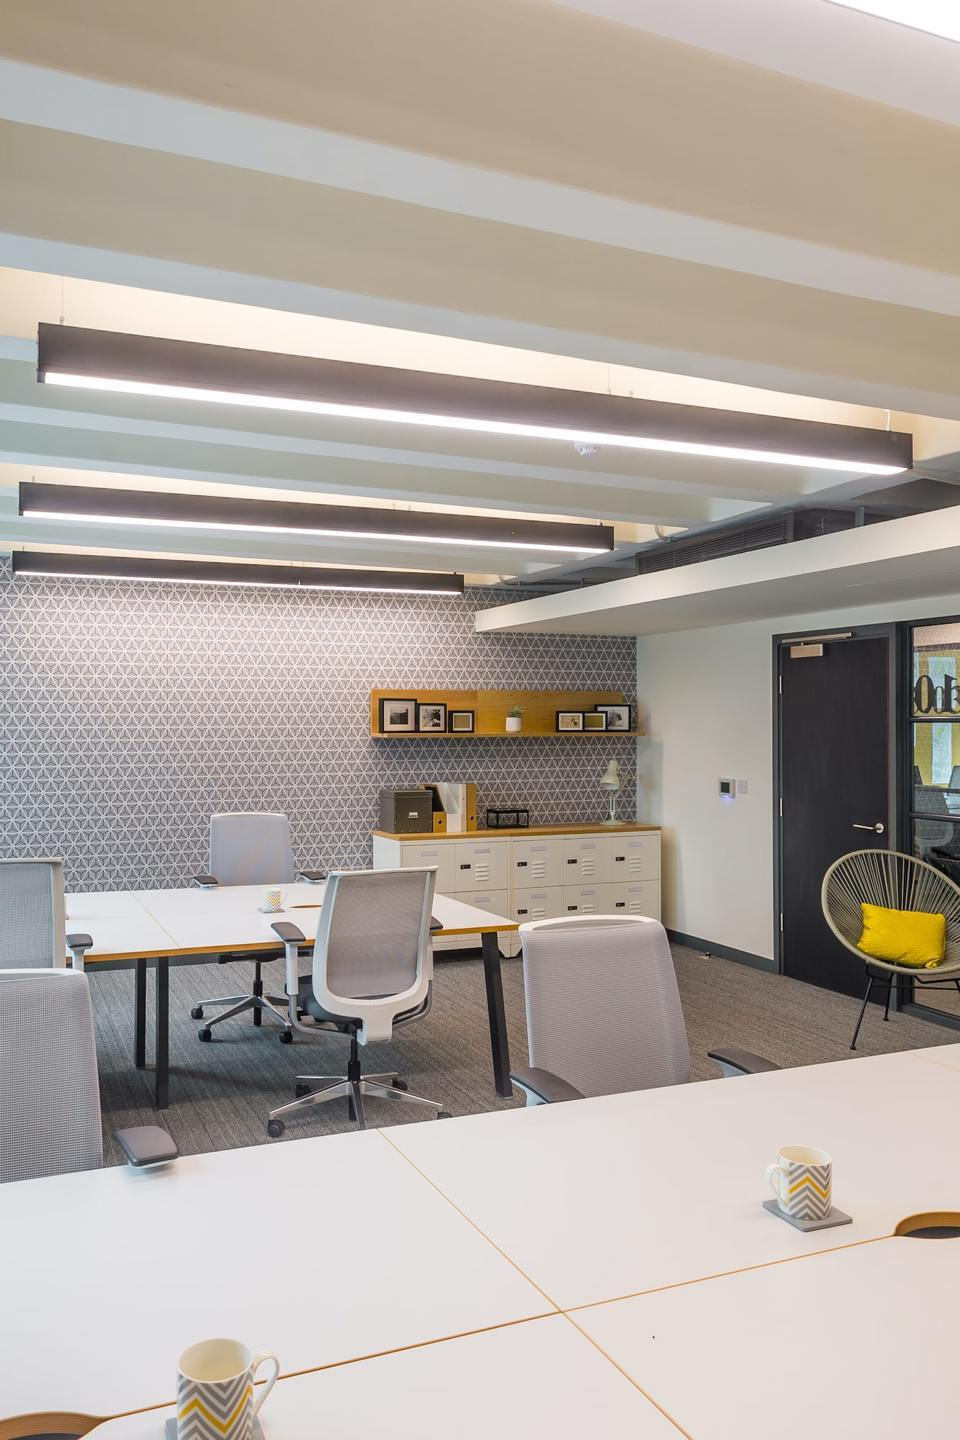 Bruntwood office space containing large white desks and white office chairs at 111 piccadilly